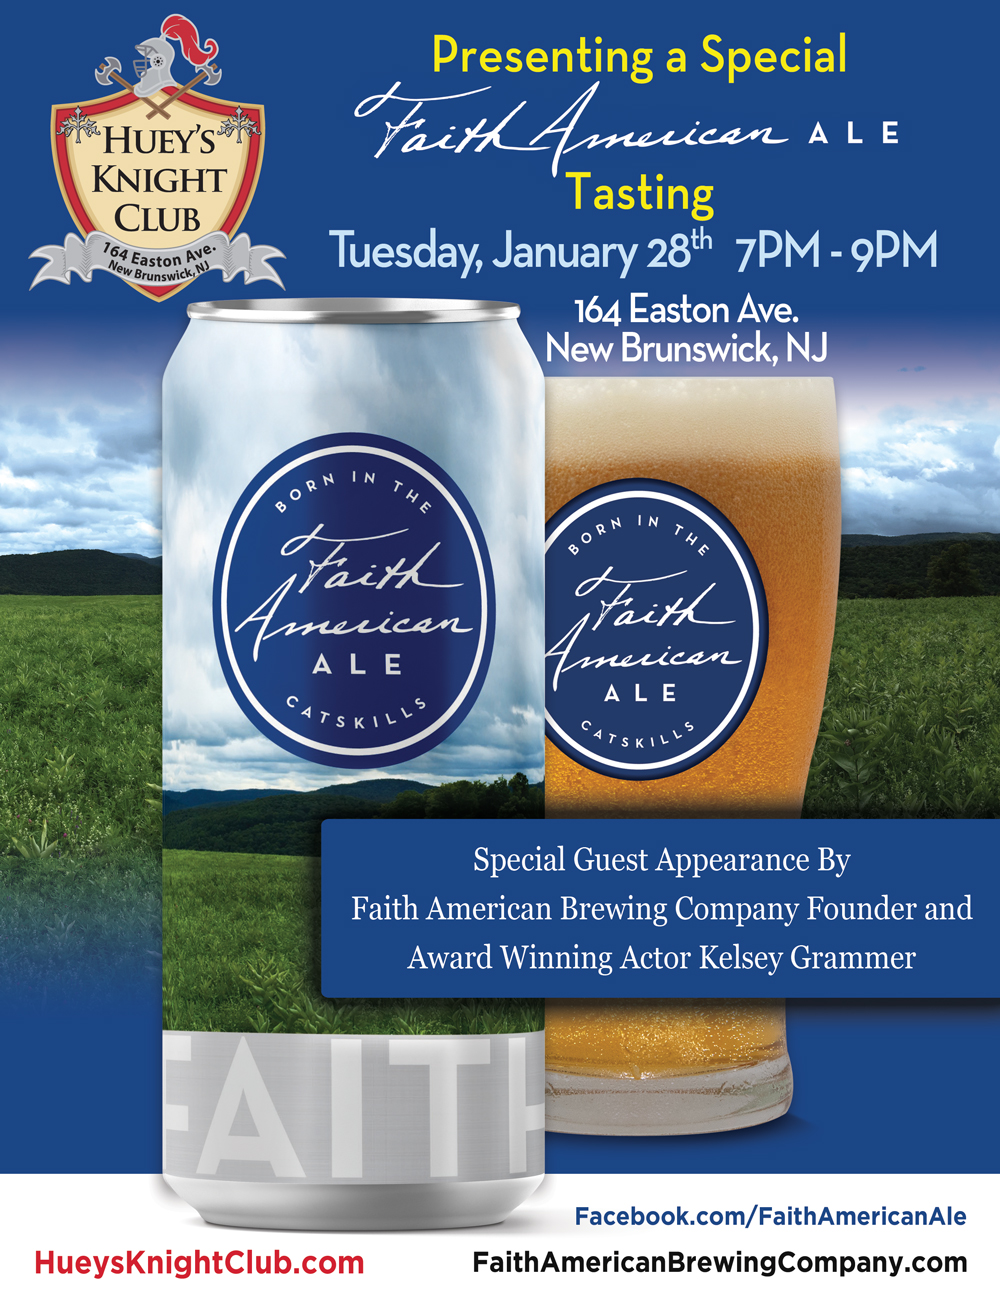 A Special Faith American Ale Tasting Event at Huey's Knight Club